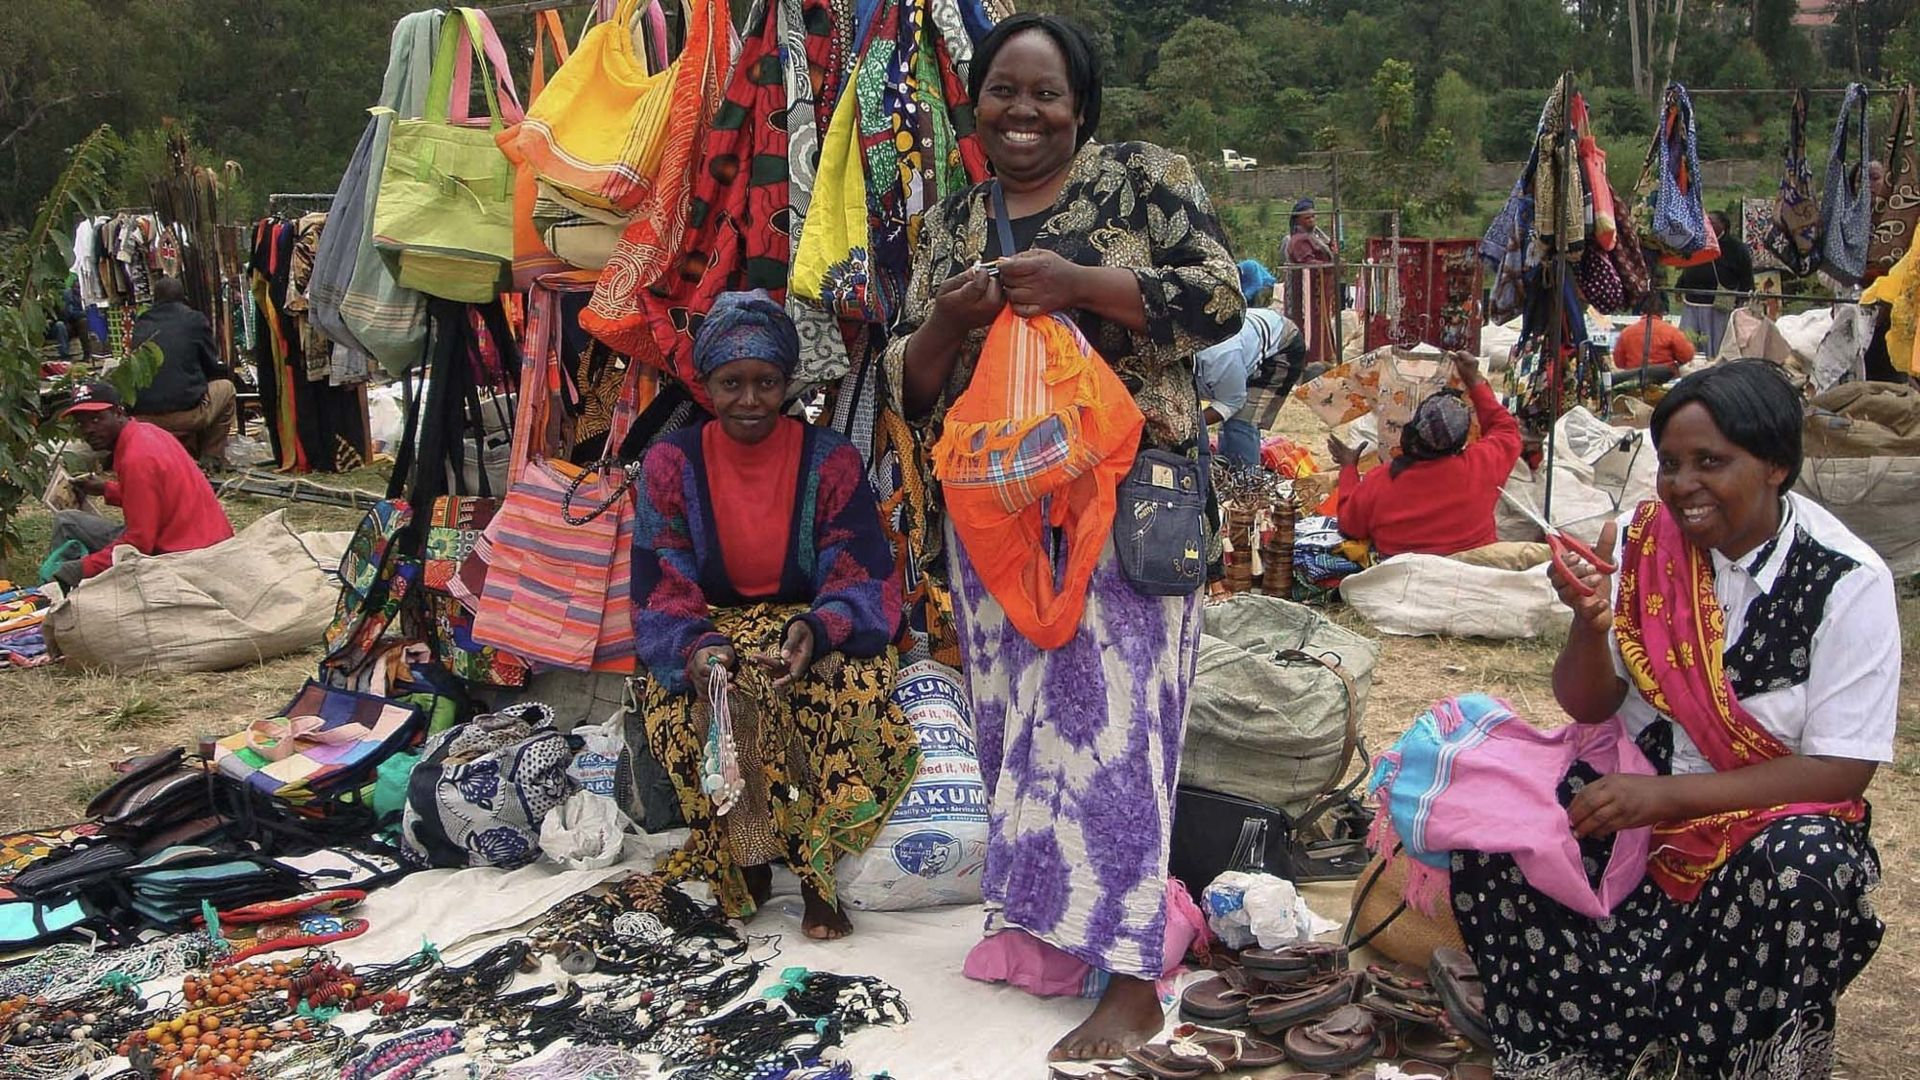 Discover the colorful markets of Arusha during your stay in Tanzania.n- - - - - - - - - - - - - - - - - n#arusha #africanculture #africa #tanzania #culturegram